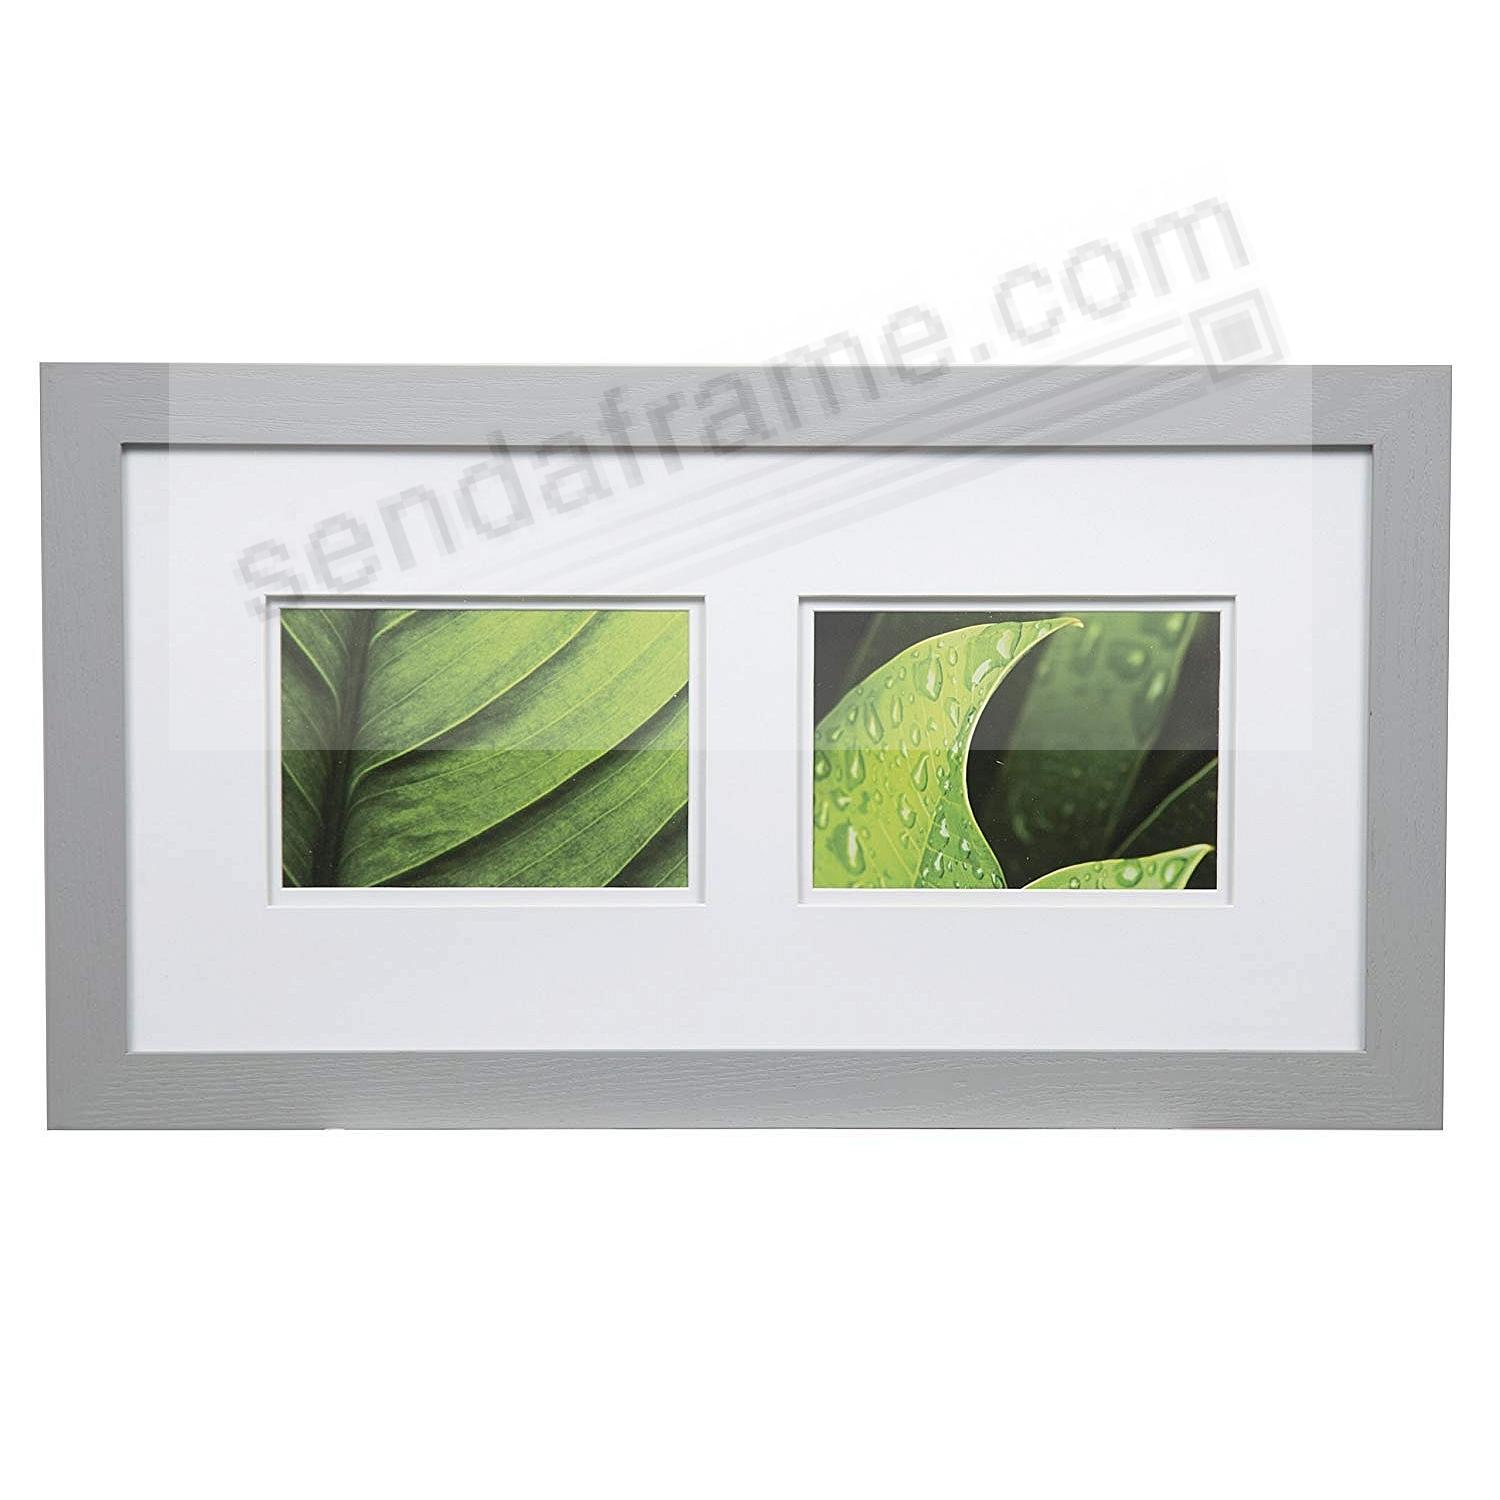 BRUSHED SILVER 20x10/5x7 double matted frame by Gallery Solutions™